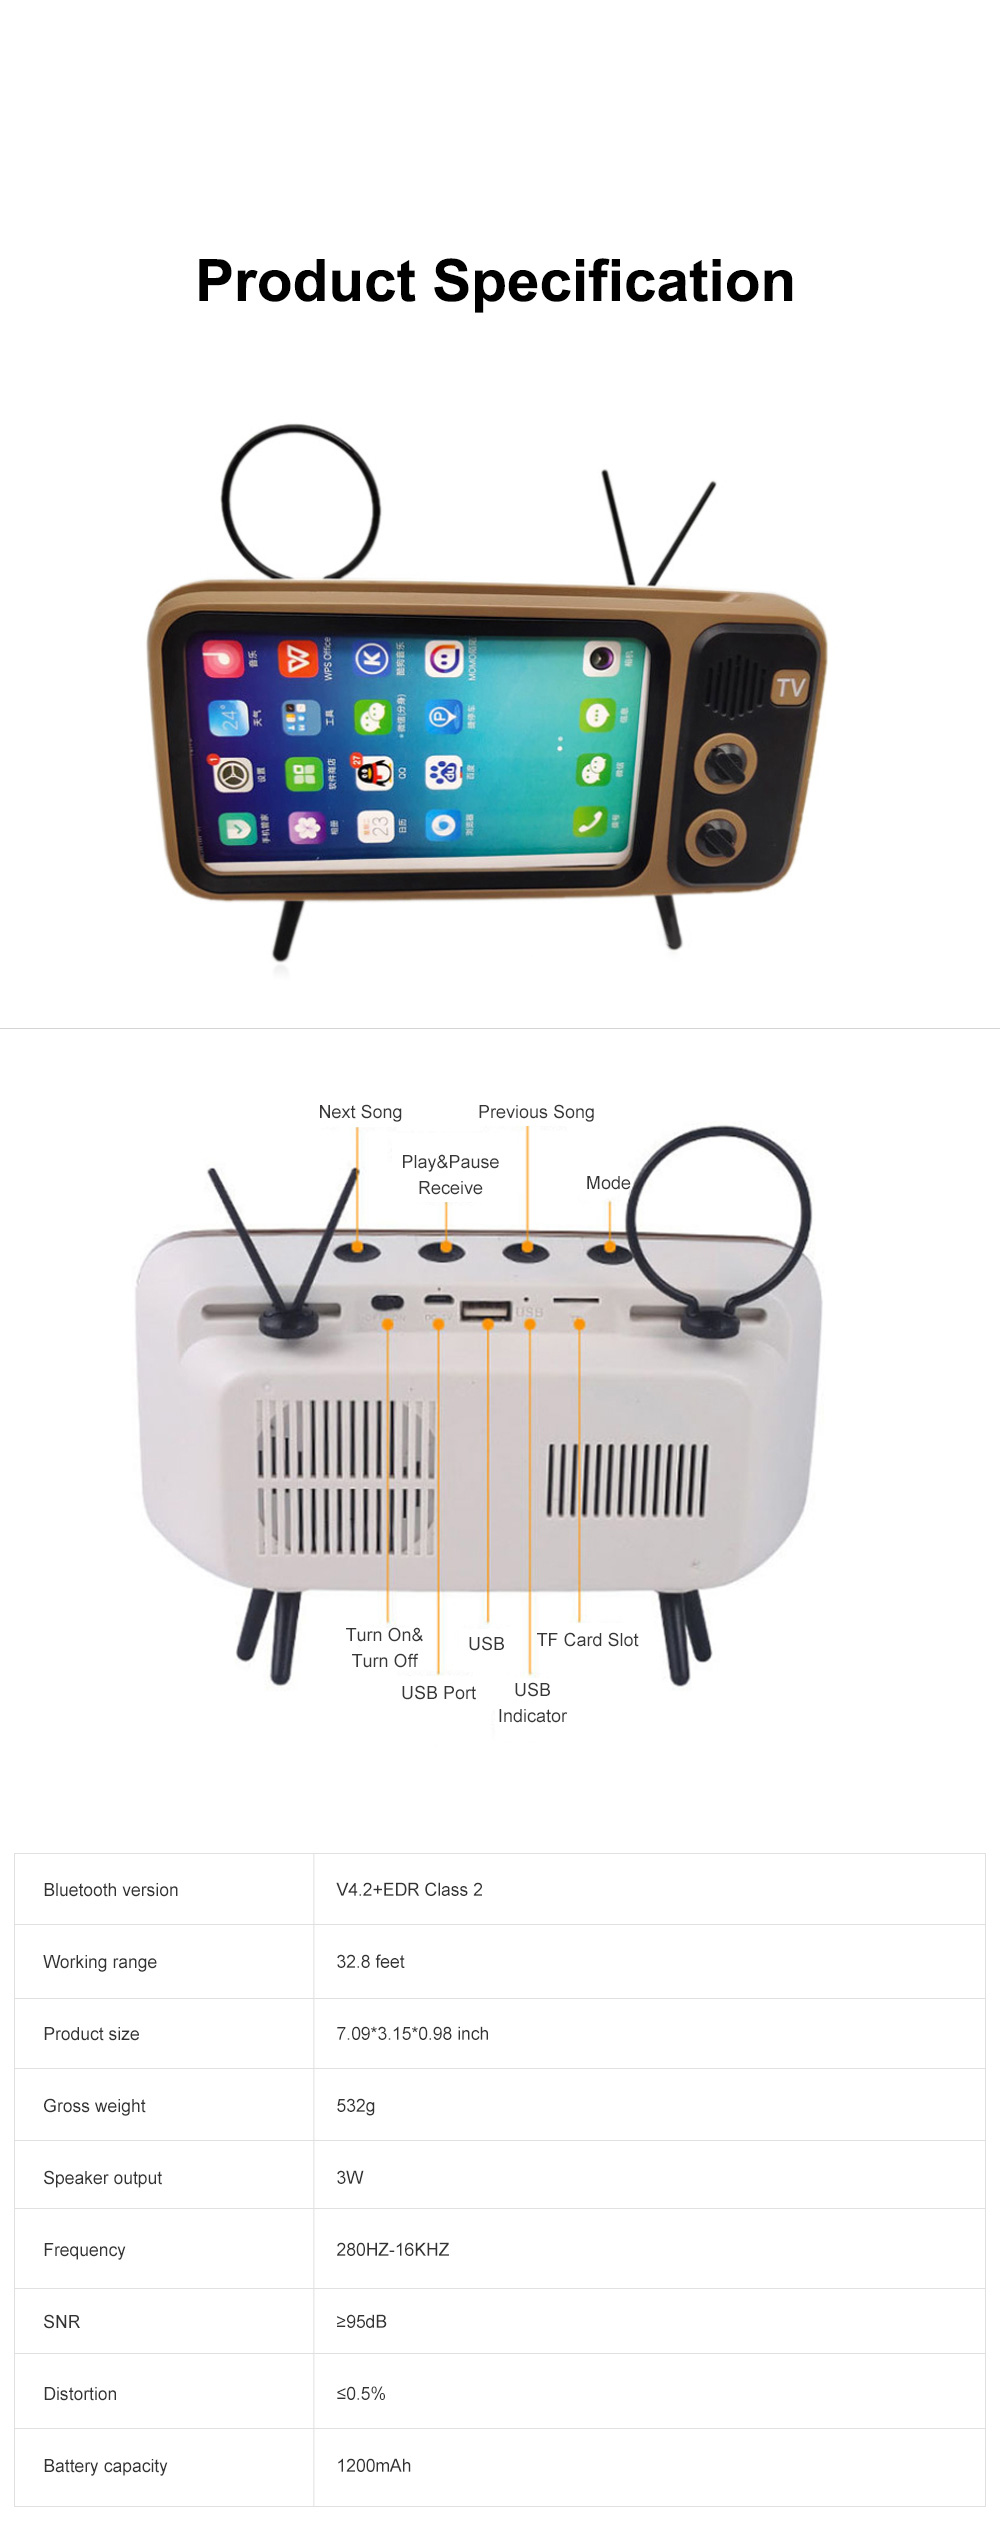 Retro Bluetooth Speaker Portable Wireless Stereo Speaker Old Fashioned Classic TV Style Music Player Phone Stand Mount 6